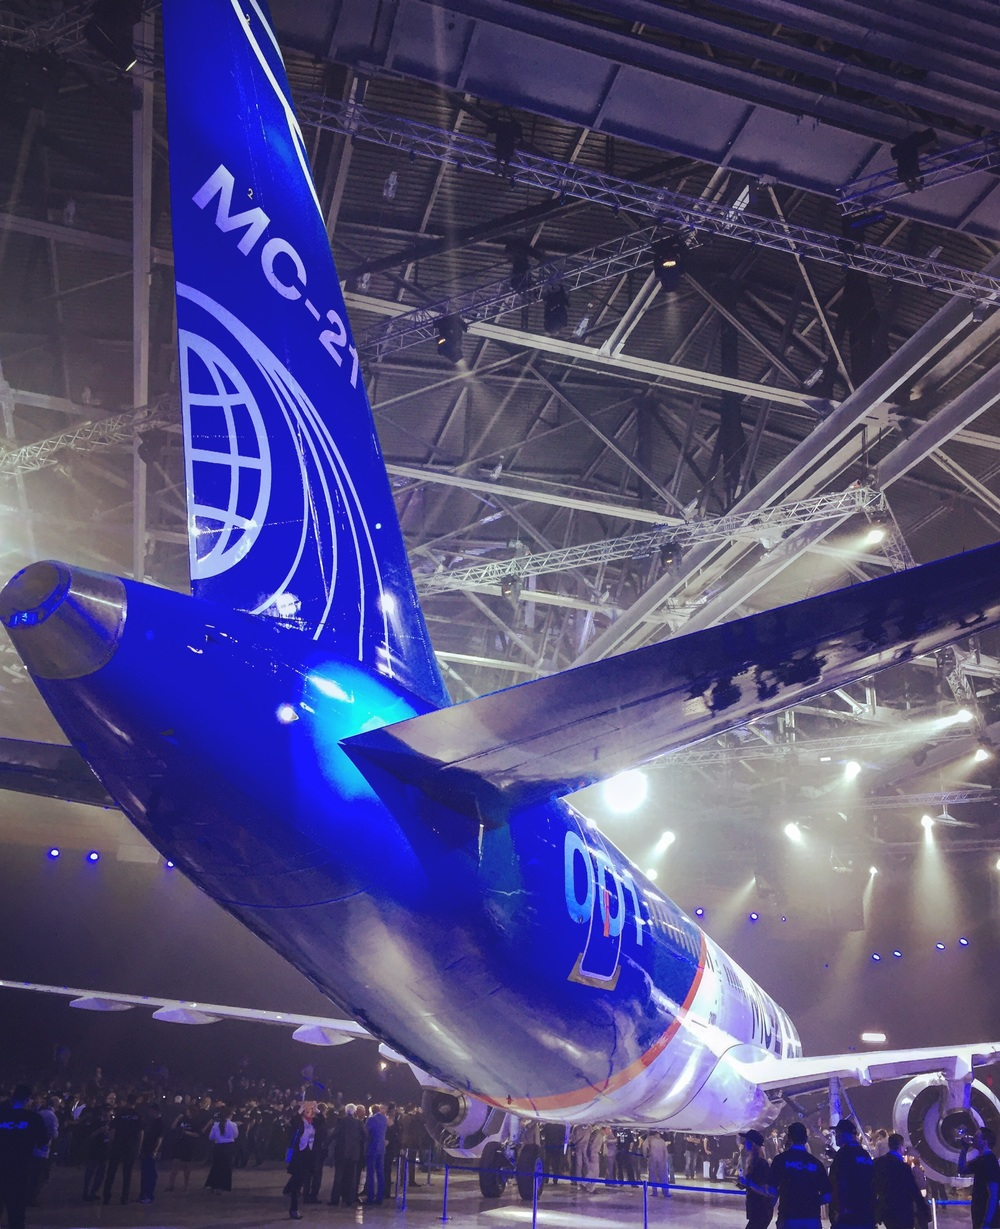 More MC-21 goodness - this one from another angle